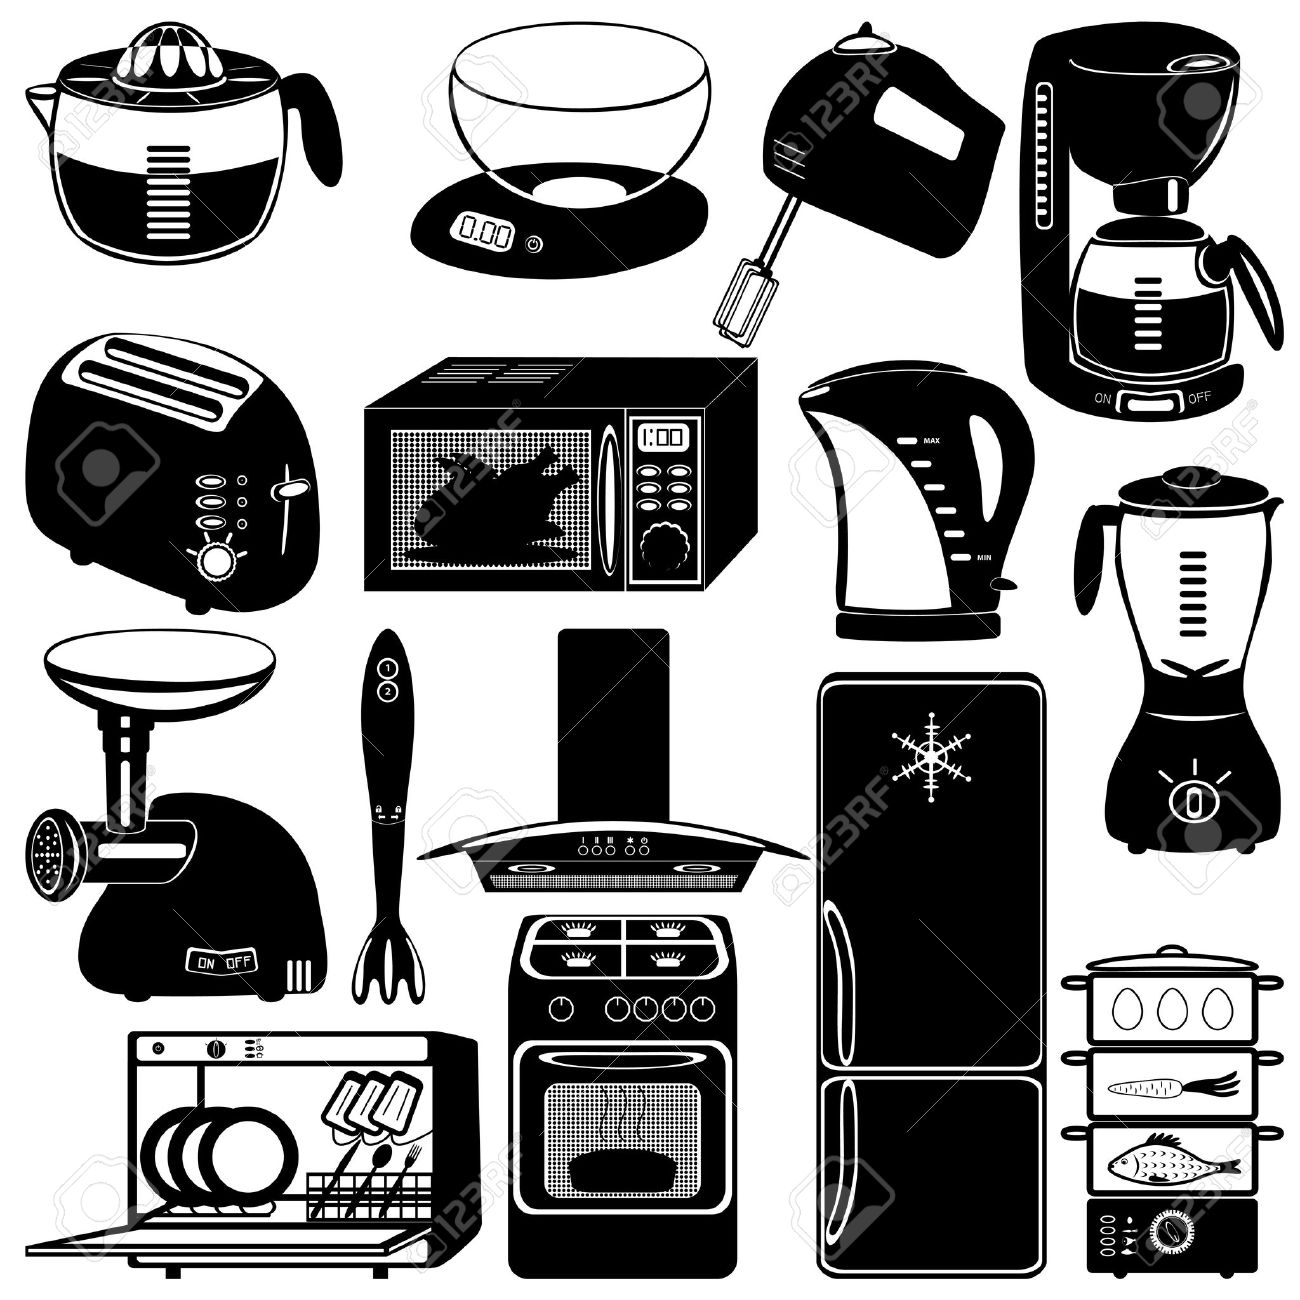 Of Kitchen Appliances Collection Of Kitchen Appliances On White Background Royalty Free